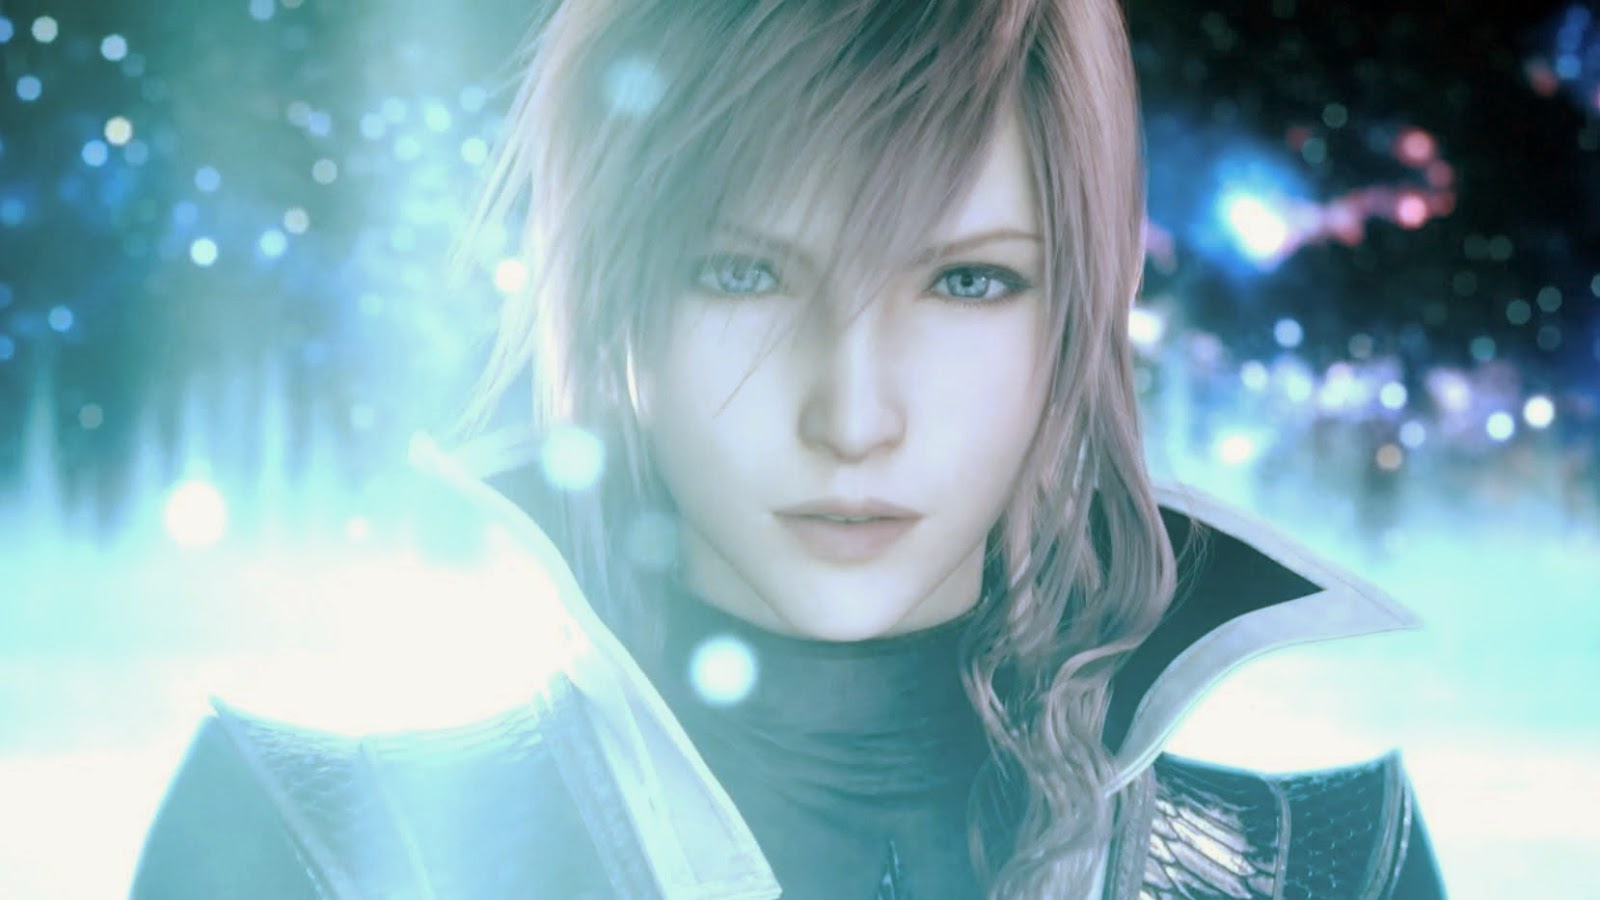 Whats the name of the song lightning returns final fantasy xiii whats the name of the song lightning returns final fantasy xiii launch trailer trailer songs music voltagebd Images